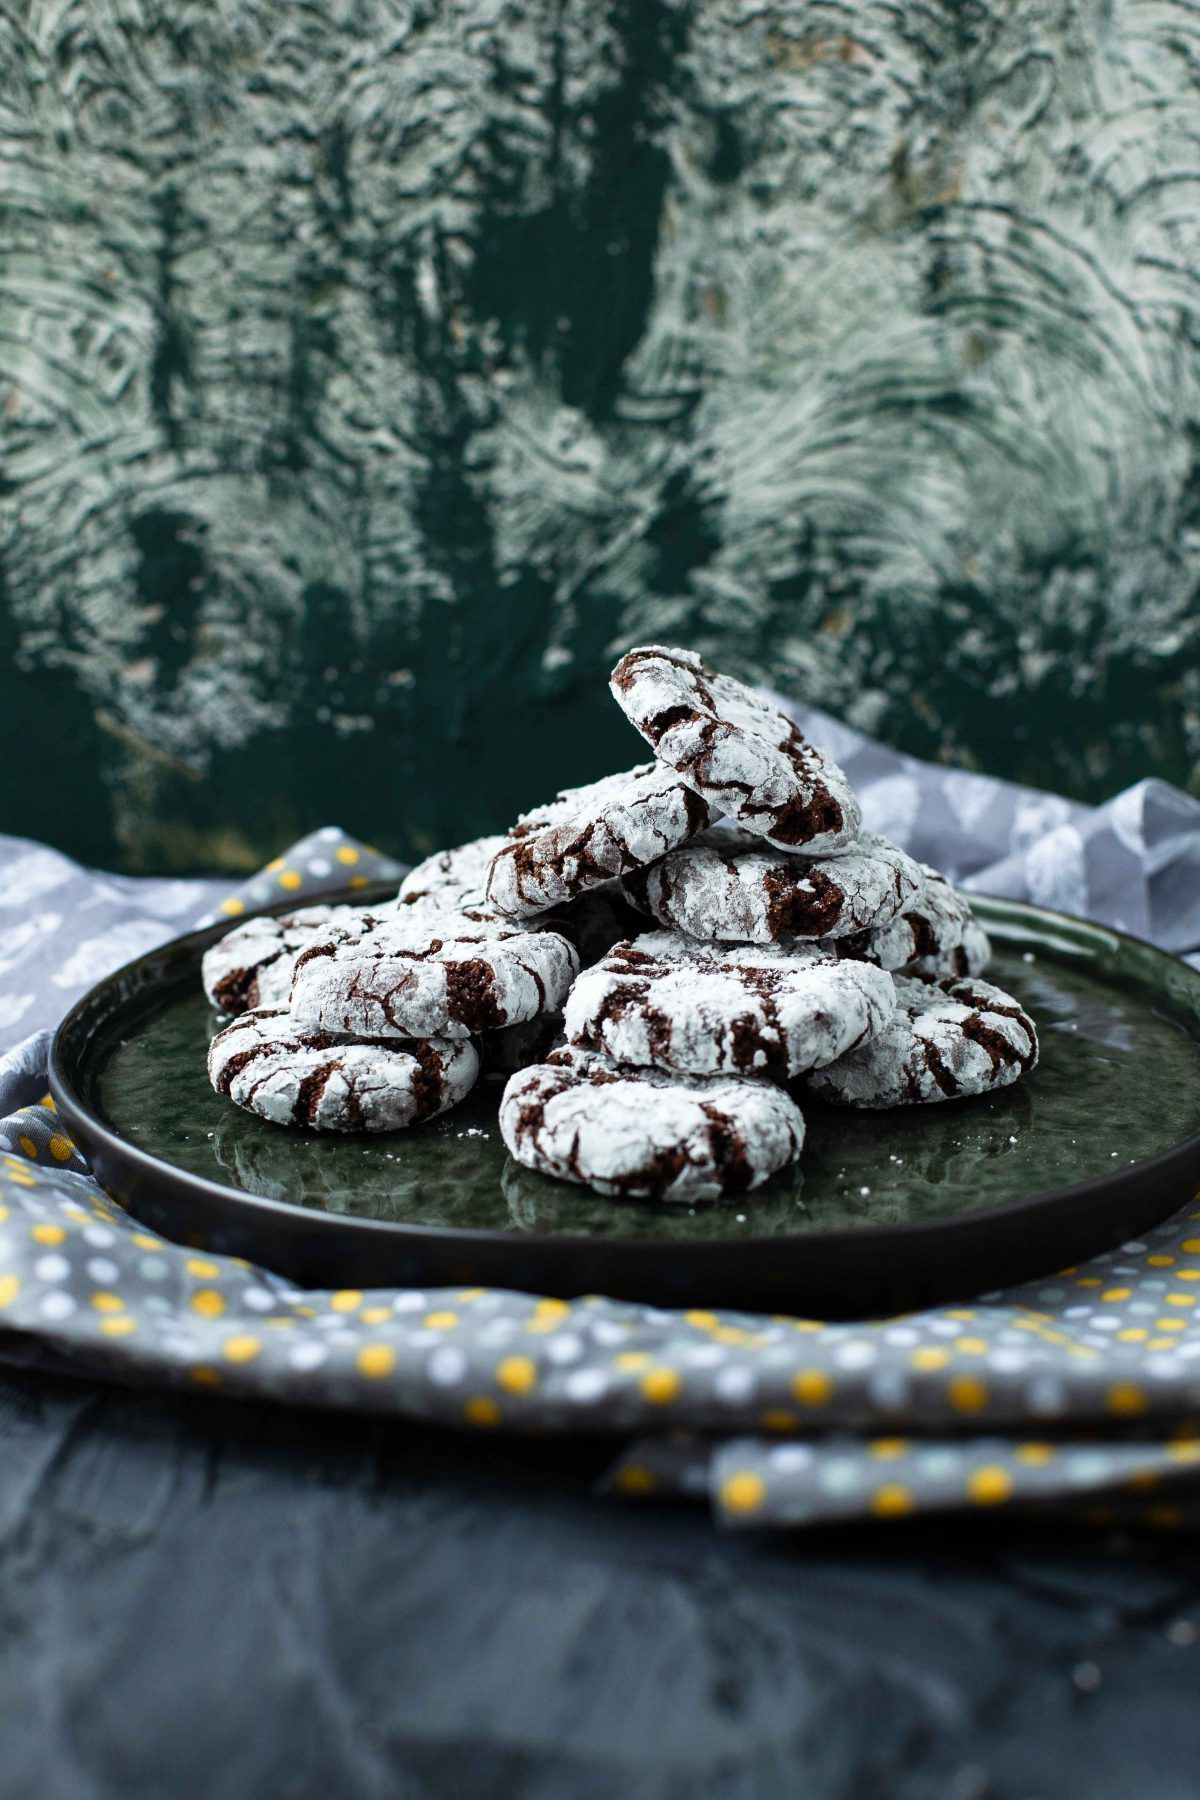 Vegan chocolate crinkle cookies #chocolatecrinklecookies Vegan chocolate crinkle cookies #chocolatecrinklecookies